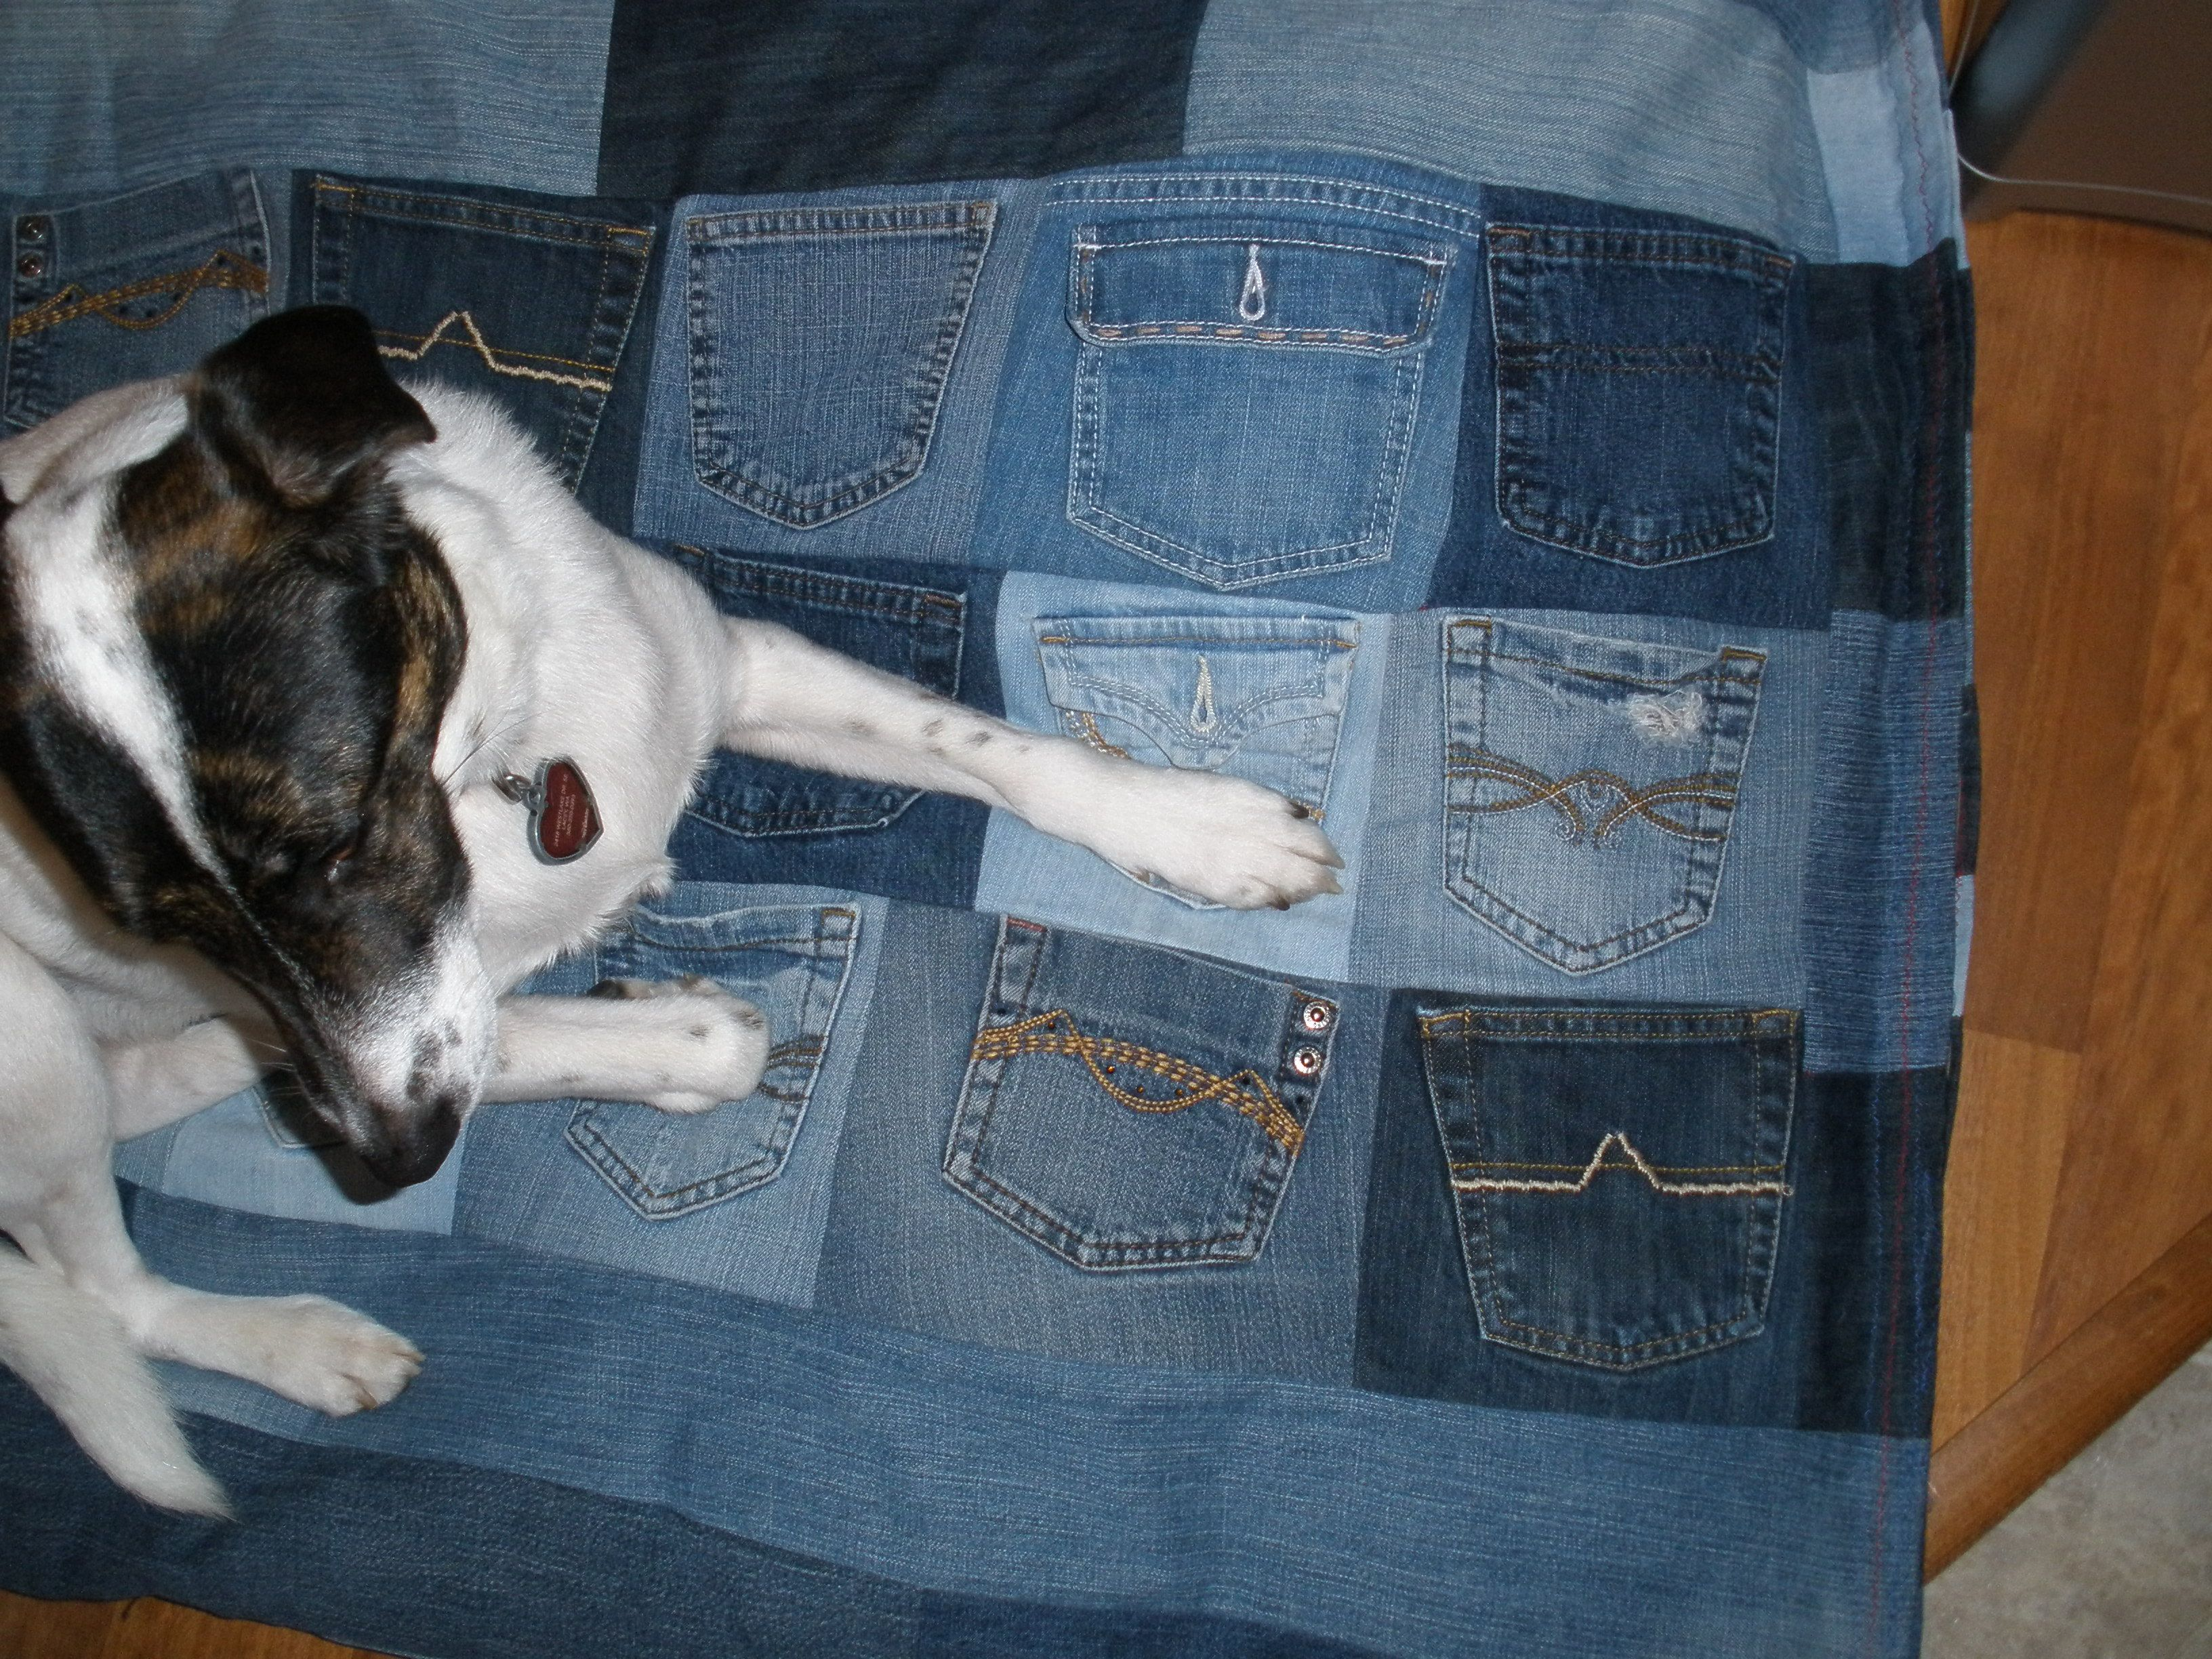 Used My Daughter S Old Jeans To Make A Dog Bed Cover Pockets On One Side And Stitched The Pants Legs To Make The Other Side Covered Dog Bed Old Jeans Dog